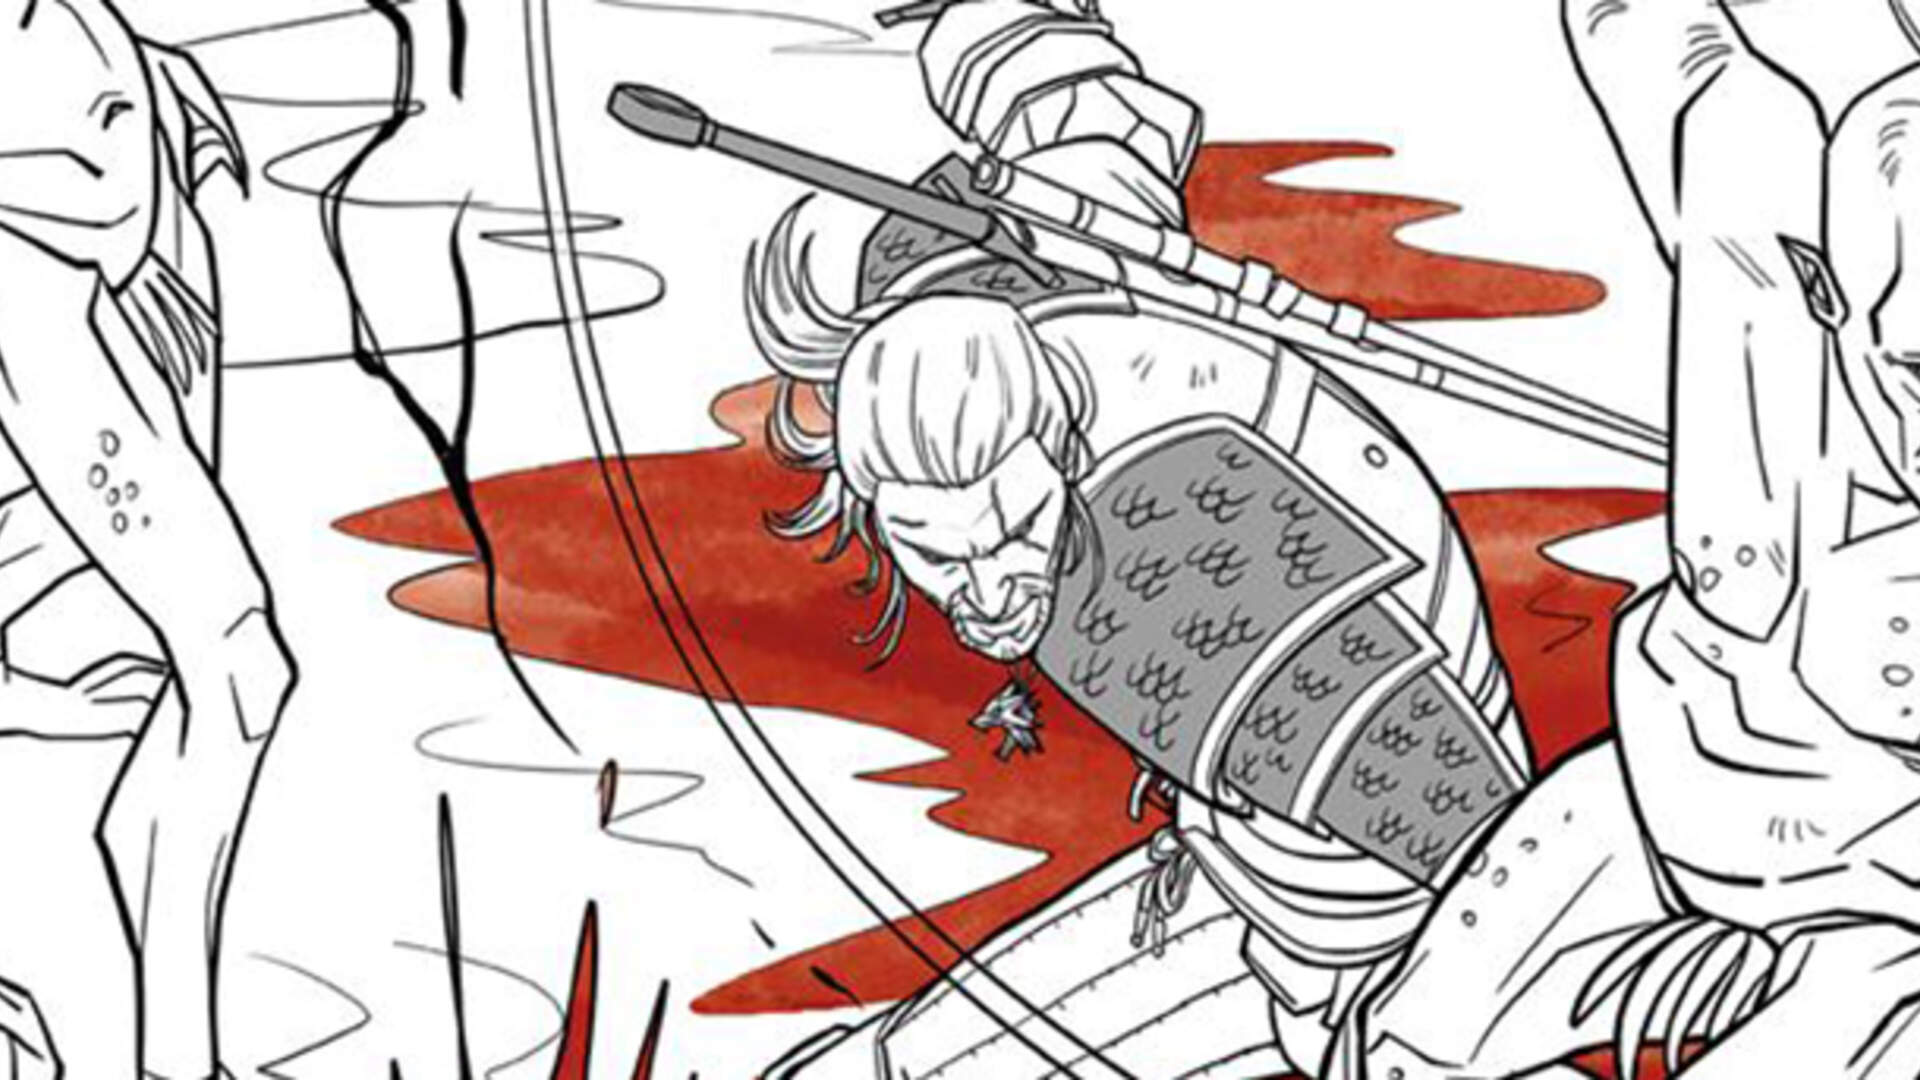 Finally, the Witcher Gets Its Own Coloring Book Complete With Bath Tub Geralt